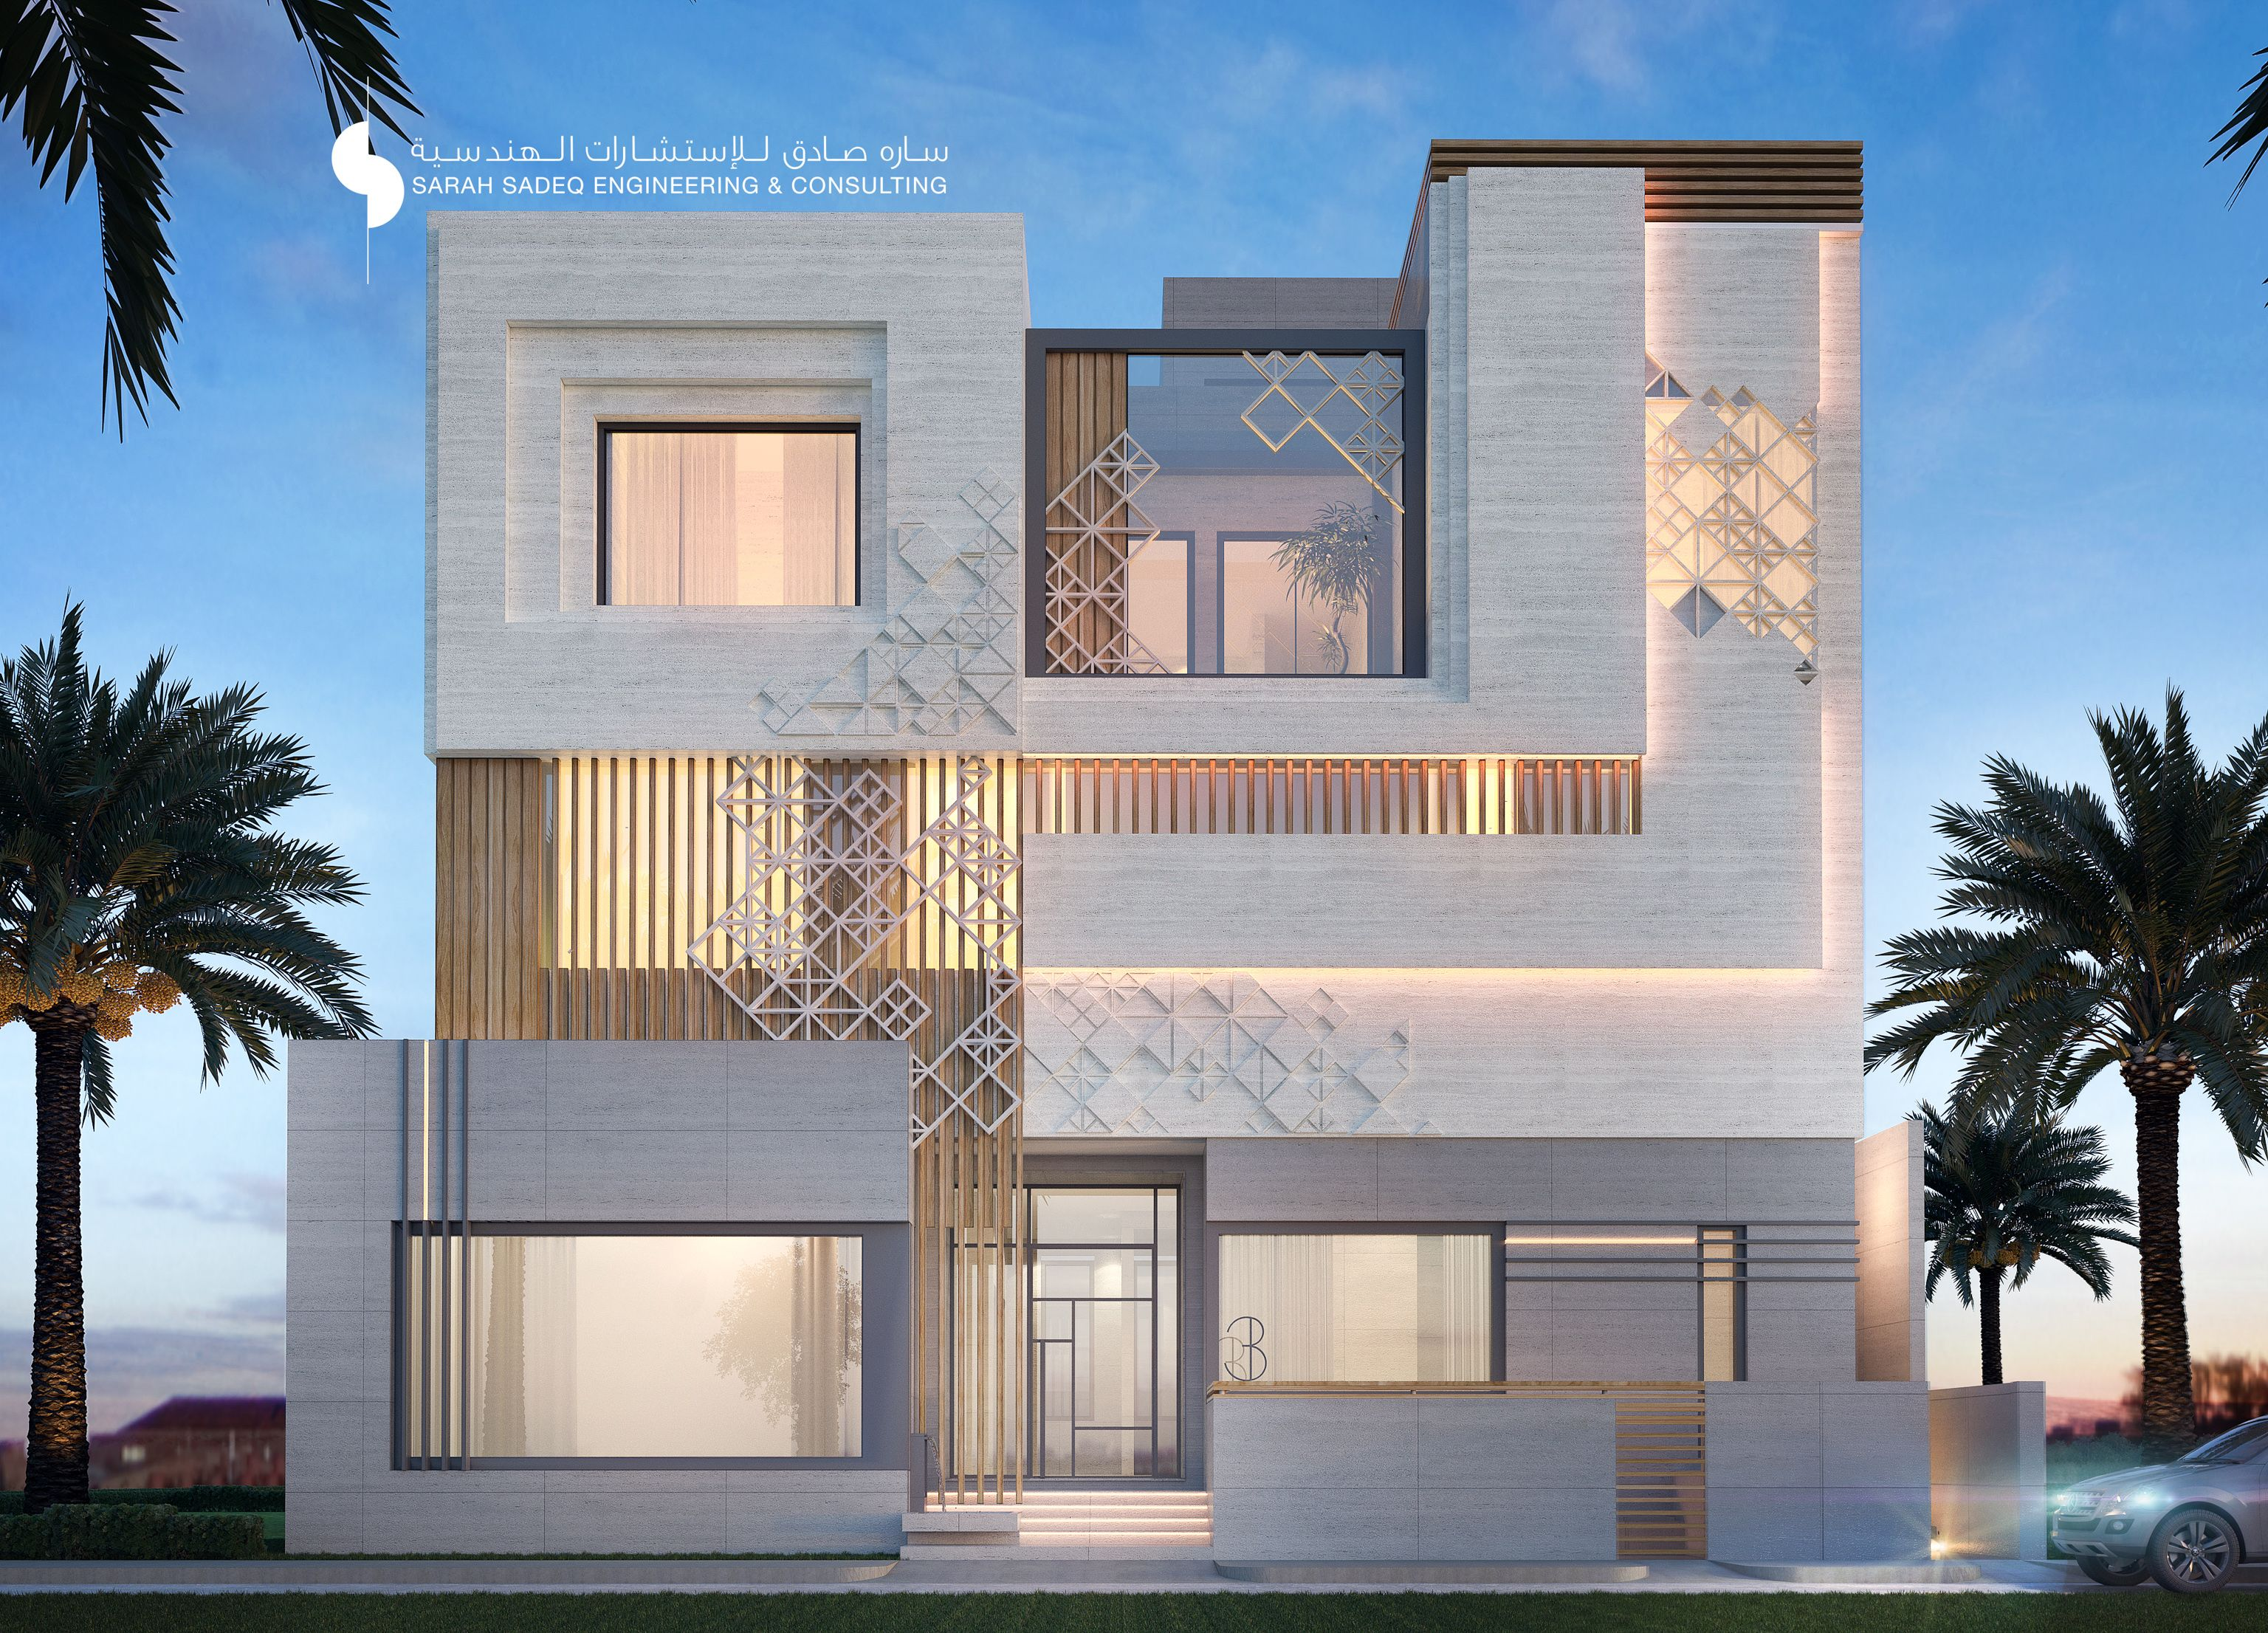 Private Villa Kuwait 400 M By Sarah Sadeq Architects